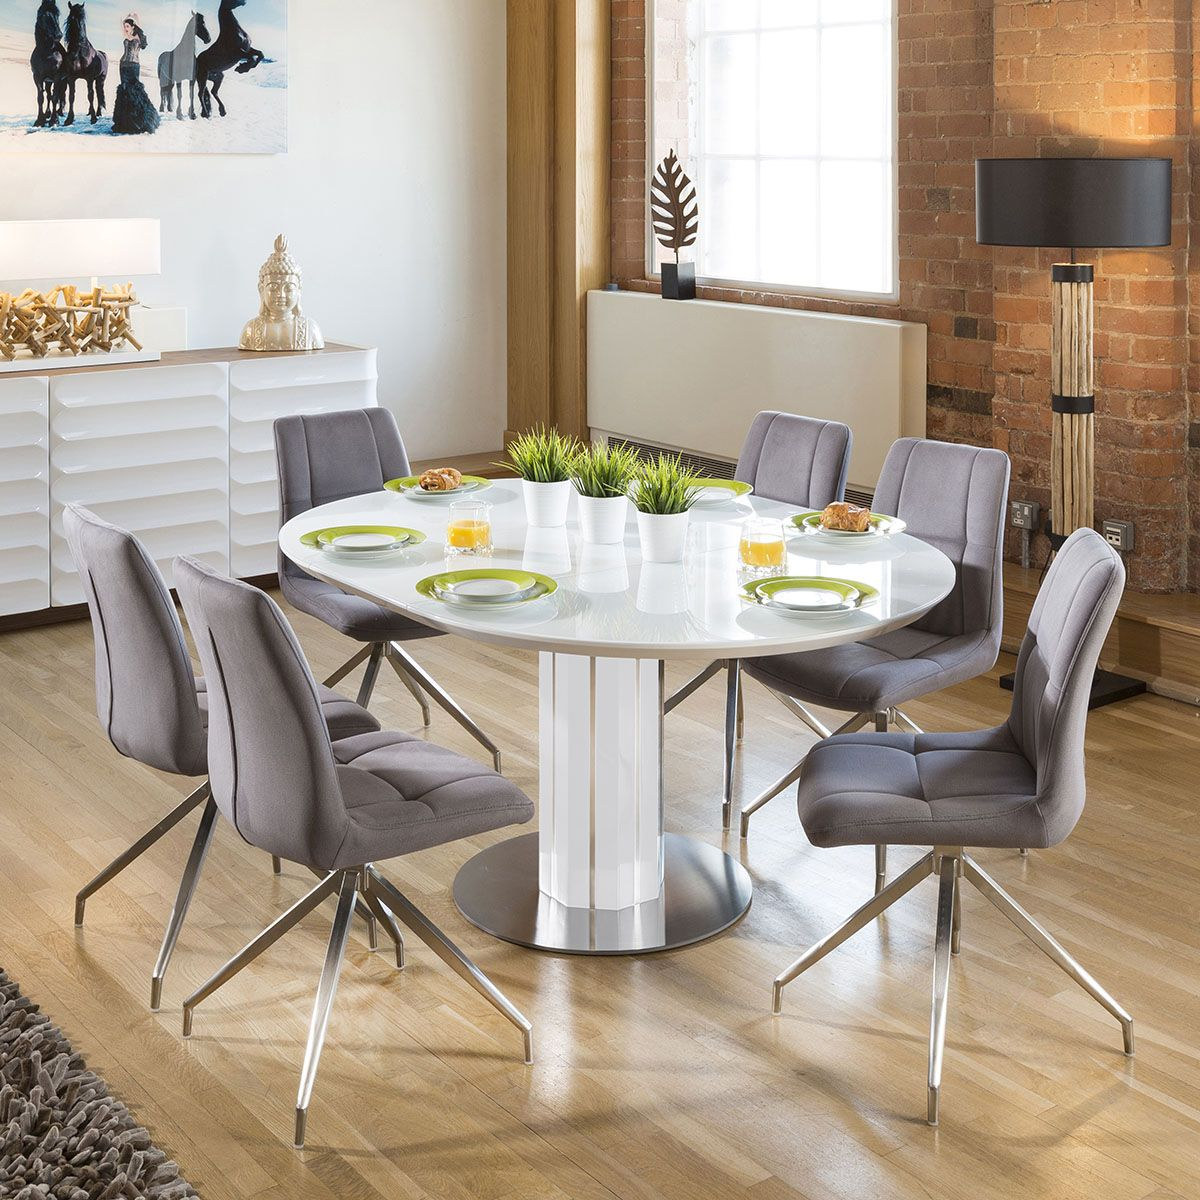 Modern Extending Dining Set Oval / Round Glass Wht Table 9 Gry ...